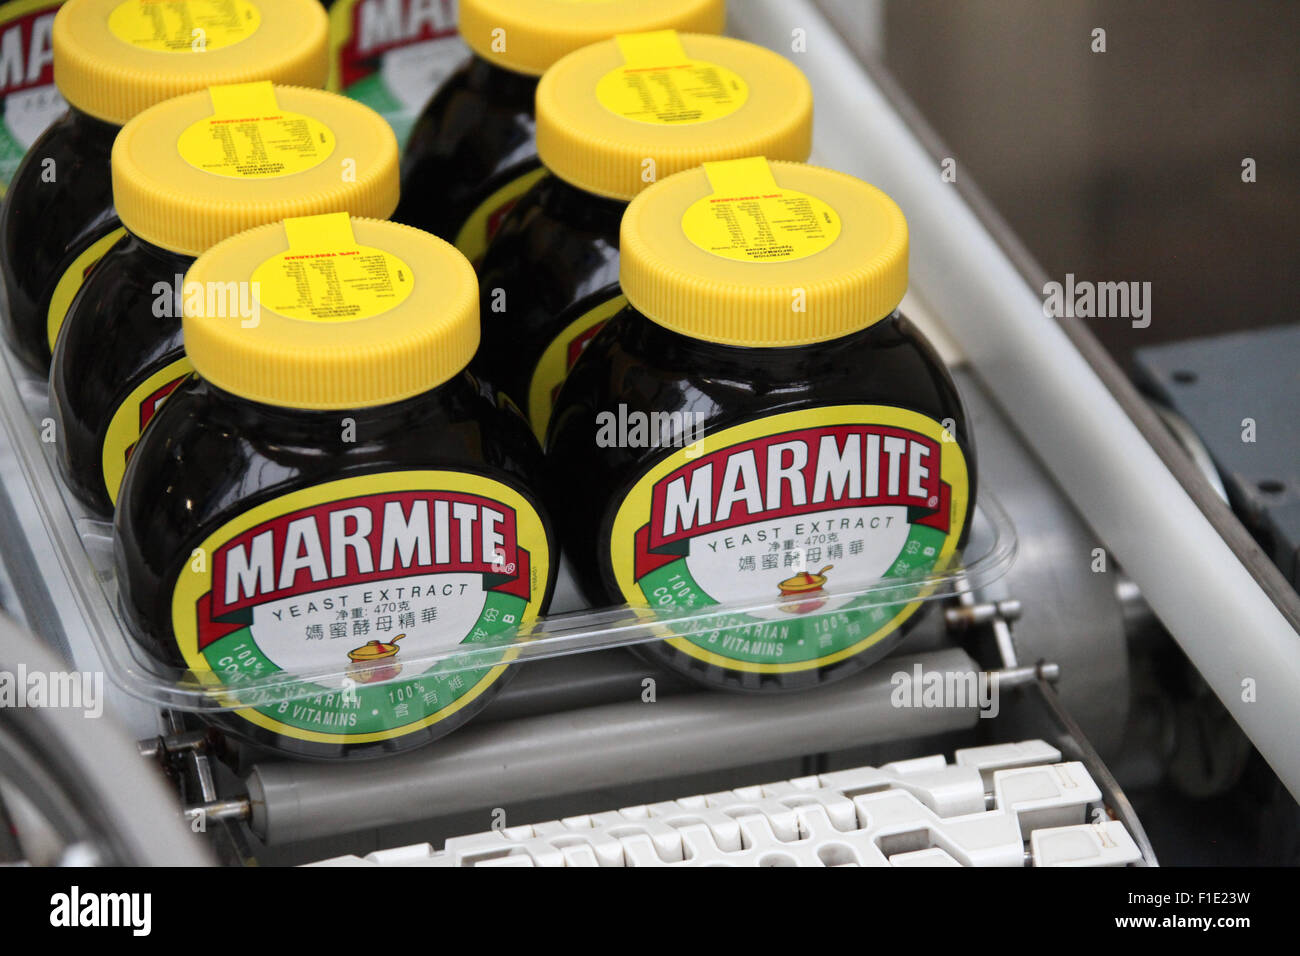 Marmite jars on the production line at the Unilever factory at Burton upon Trent in Staffordshire - Stock Image